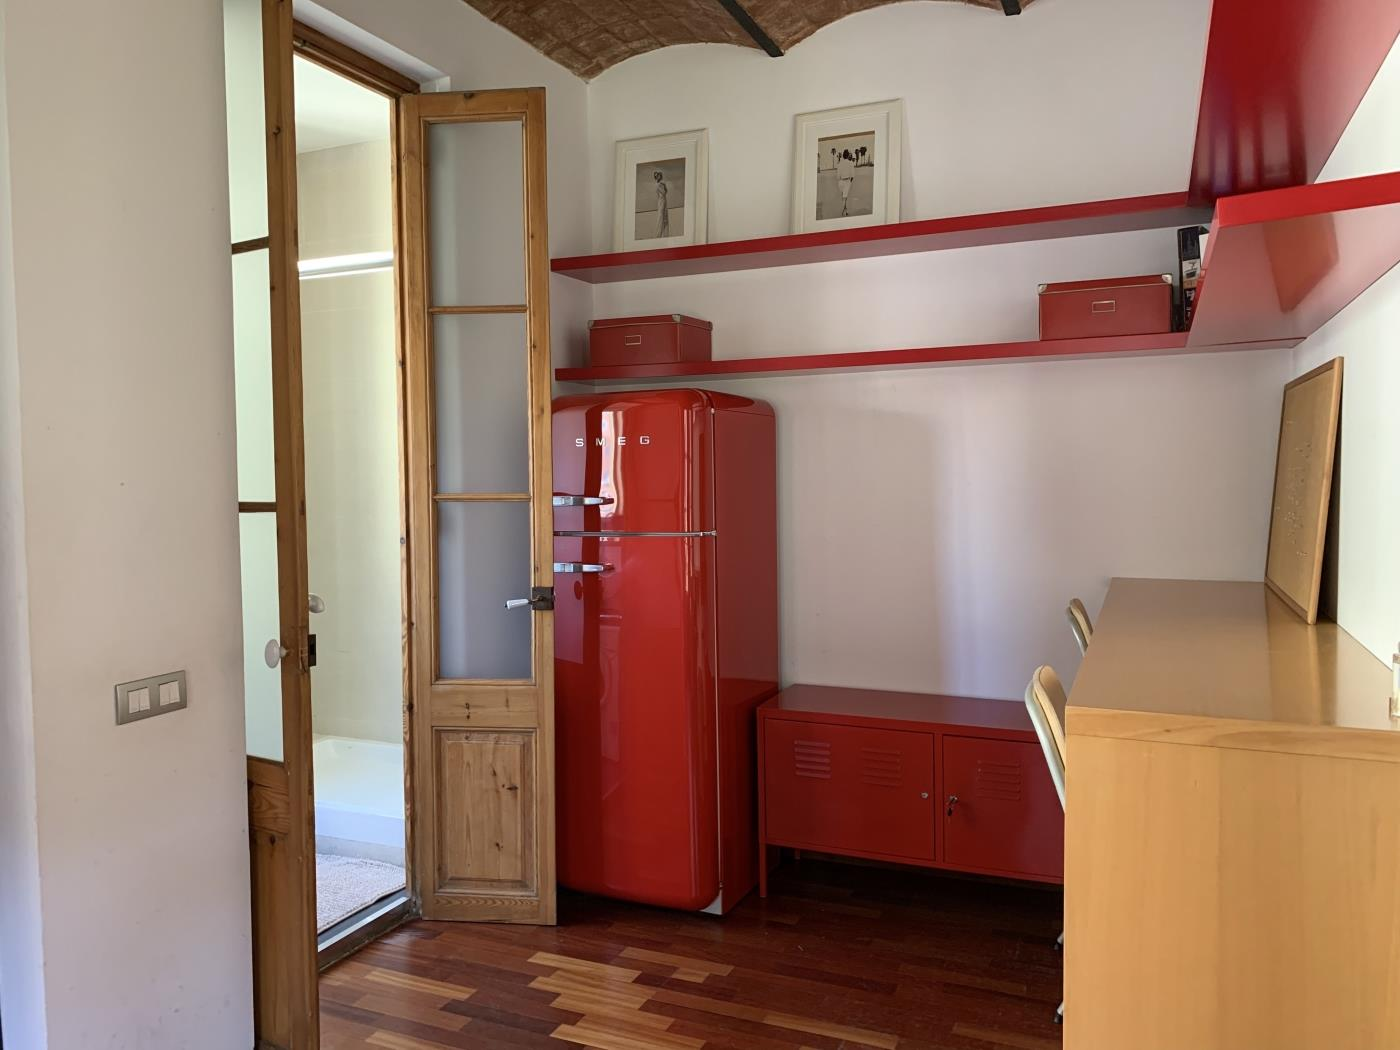 Great apartment in the best area in Gràcia near the city centre for 2 - My Space Barcelona Apartments